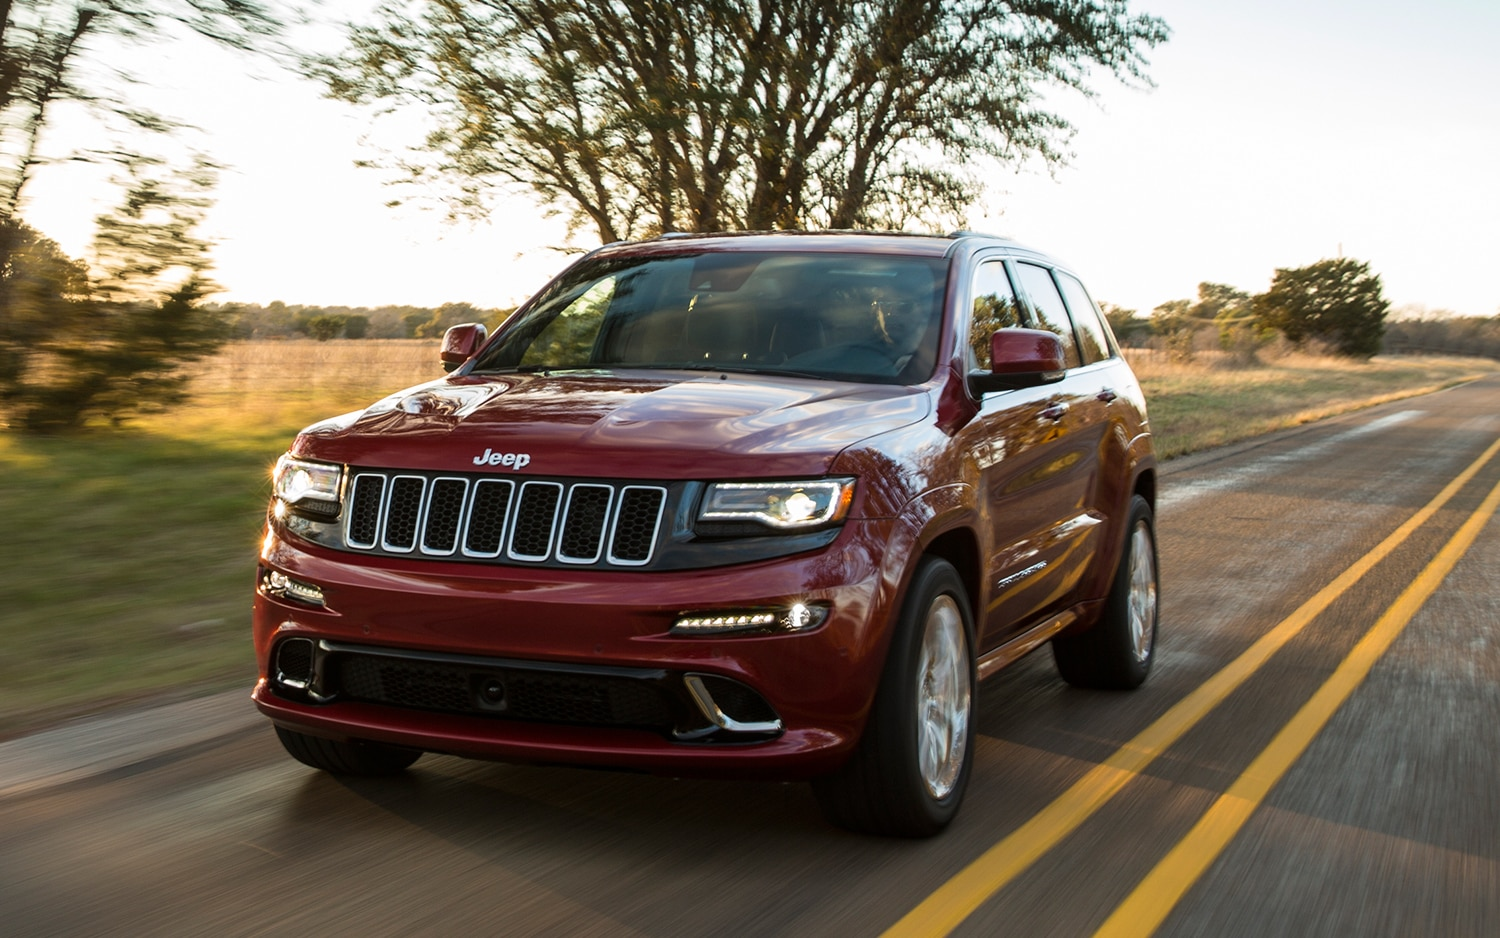 2014 Jeep Grand Cherokee SRT Front View In Motion1